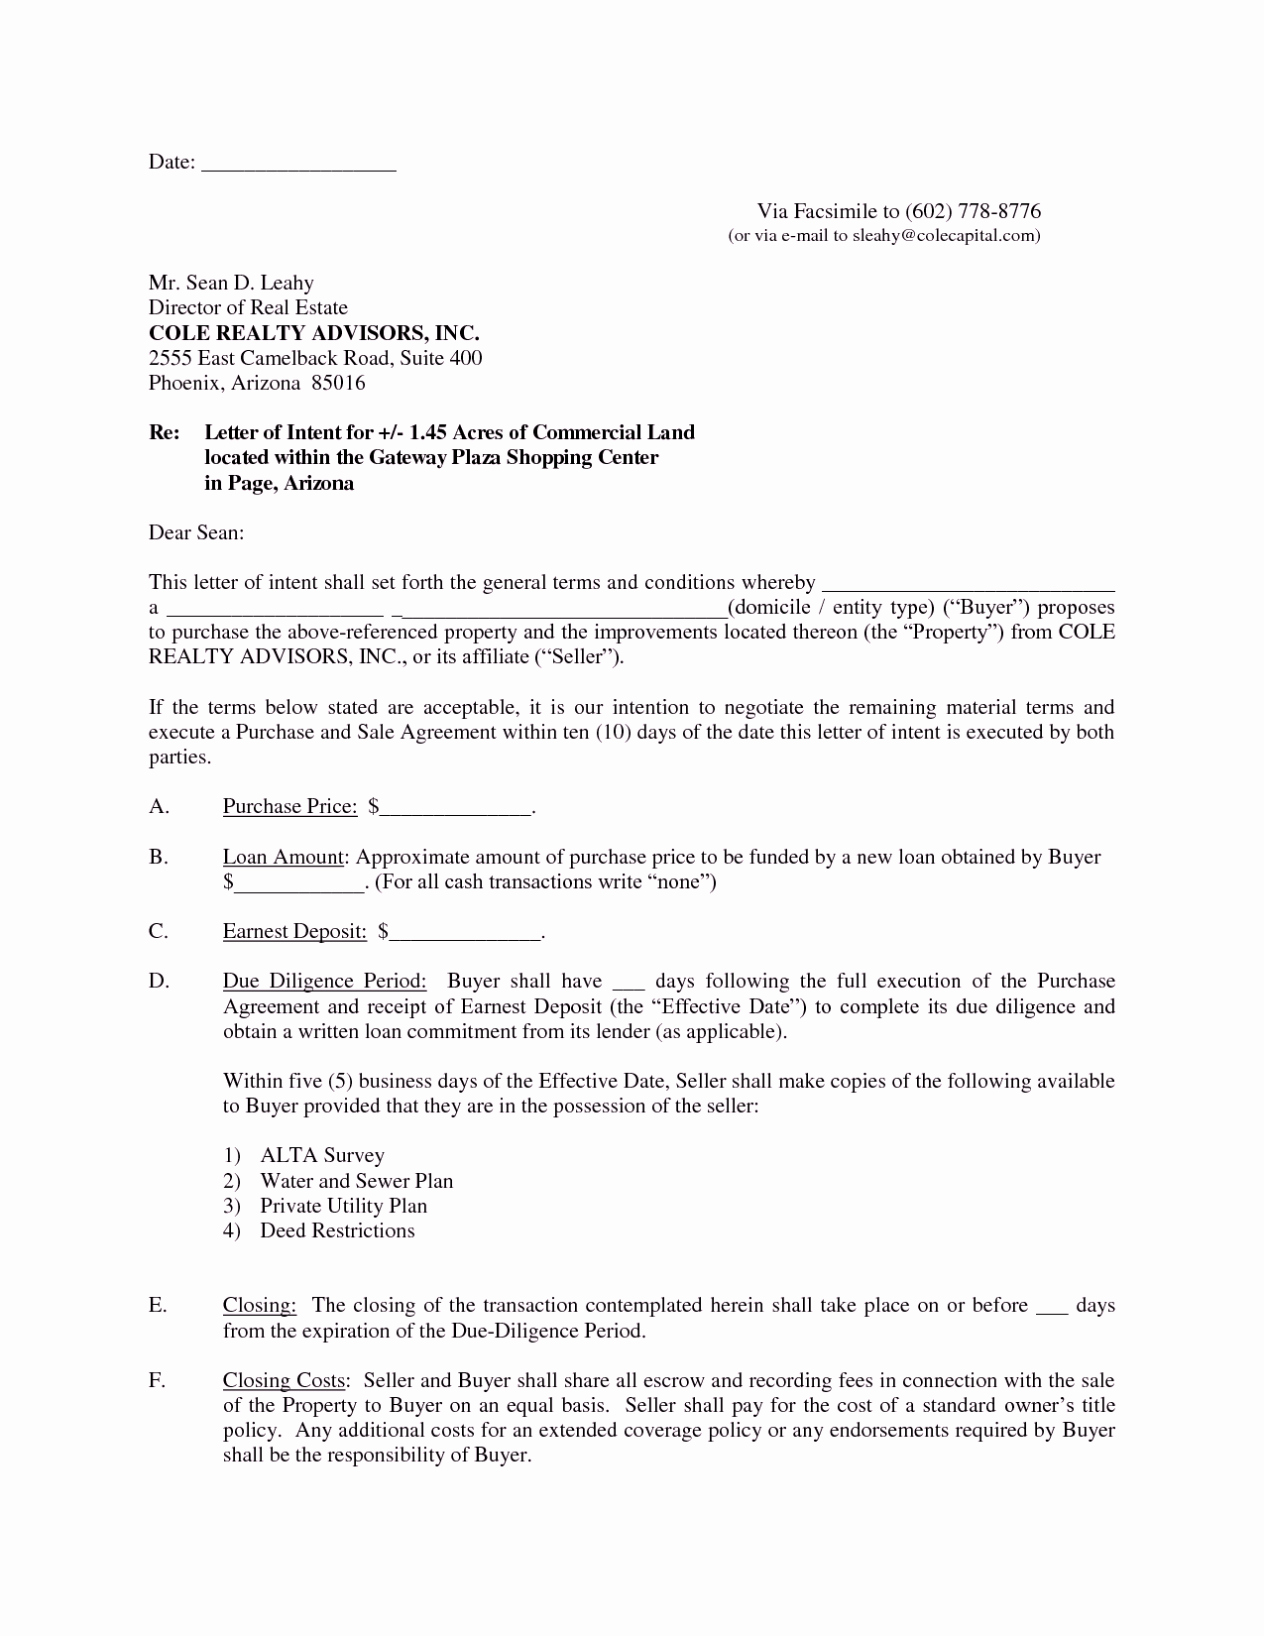 Mercial Real Estate Letter Of Intent Template Sample format